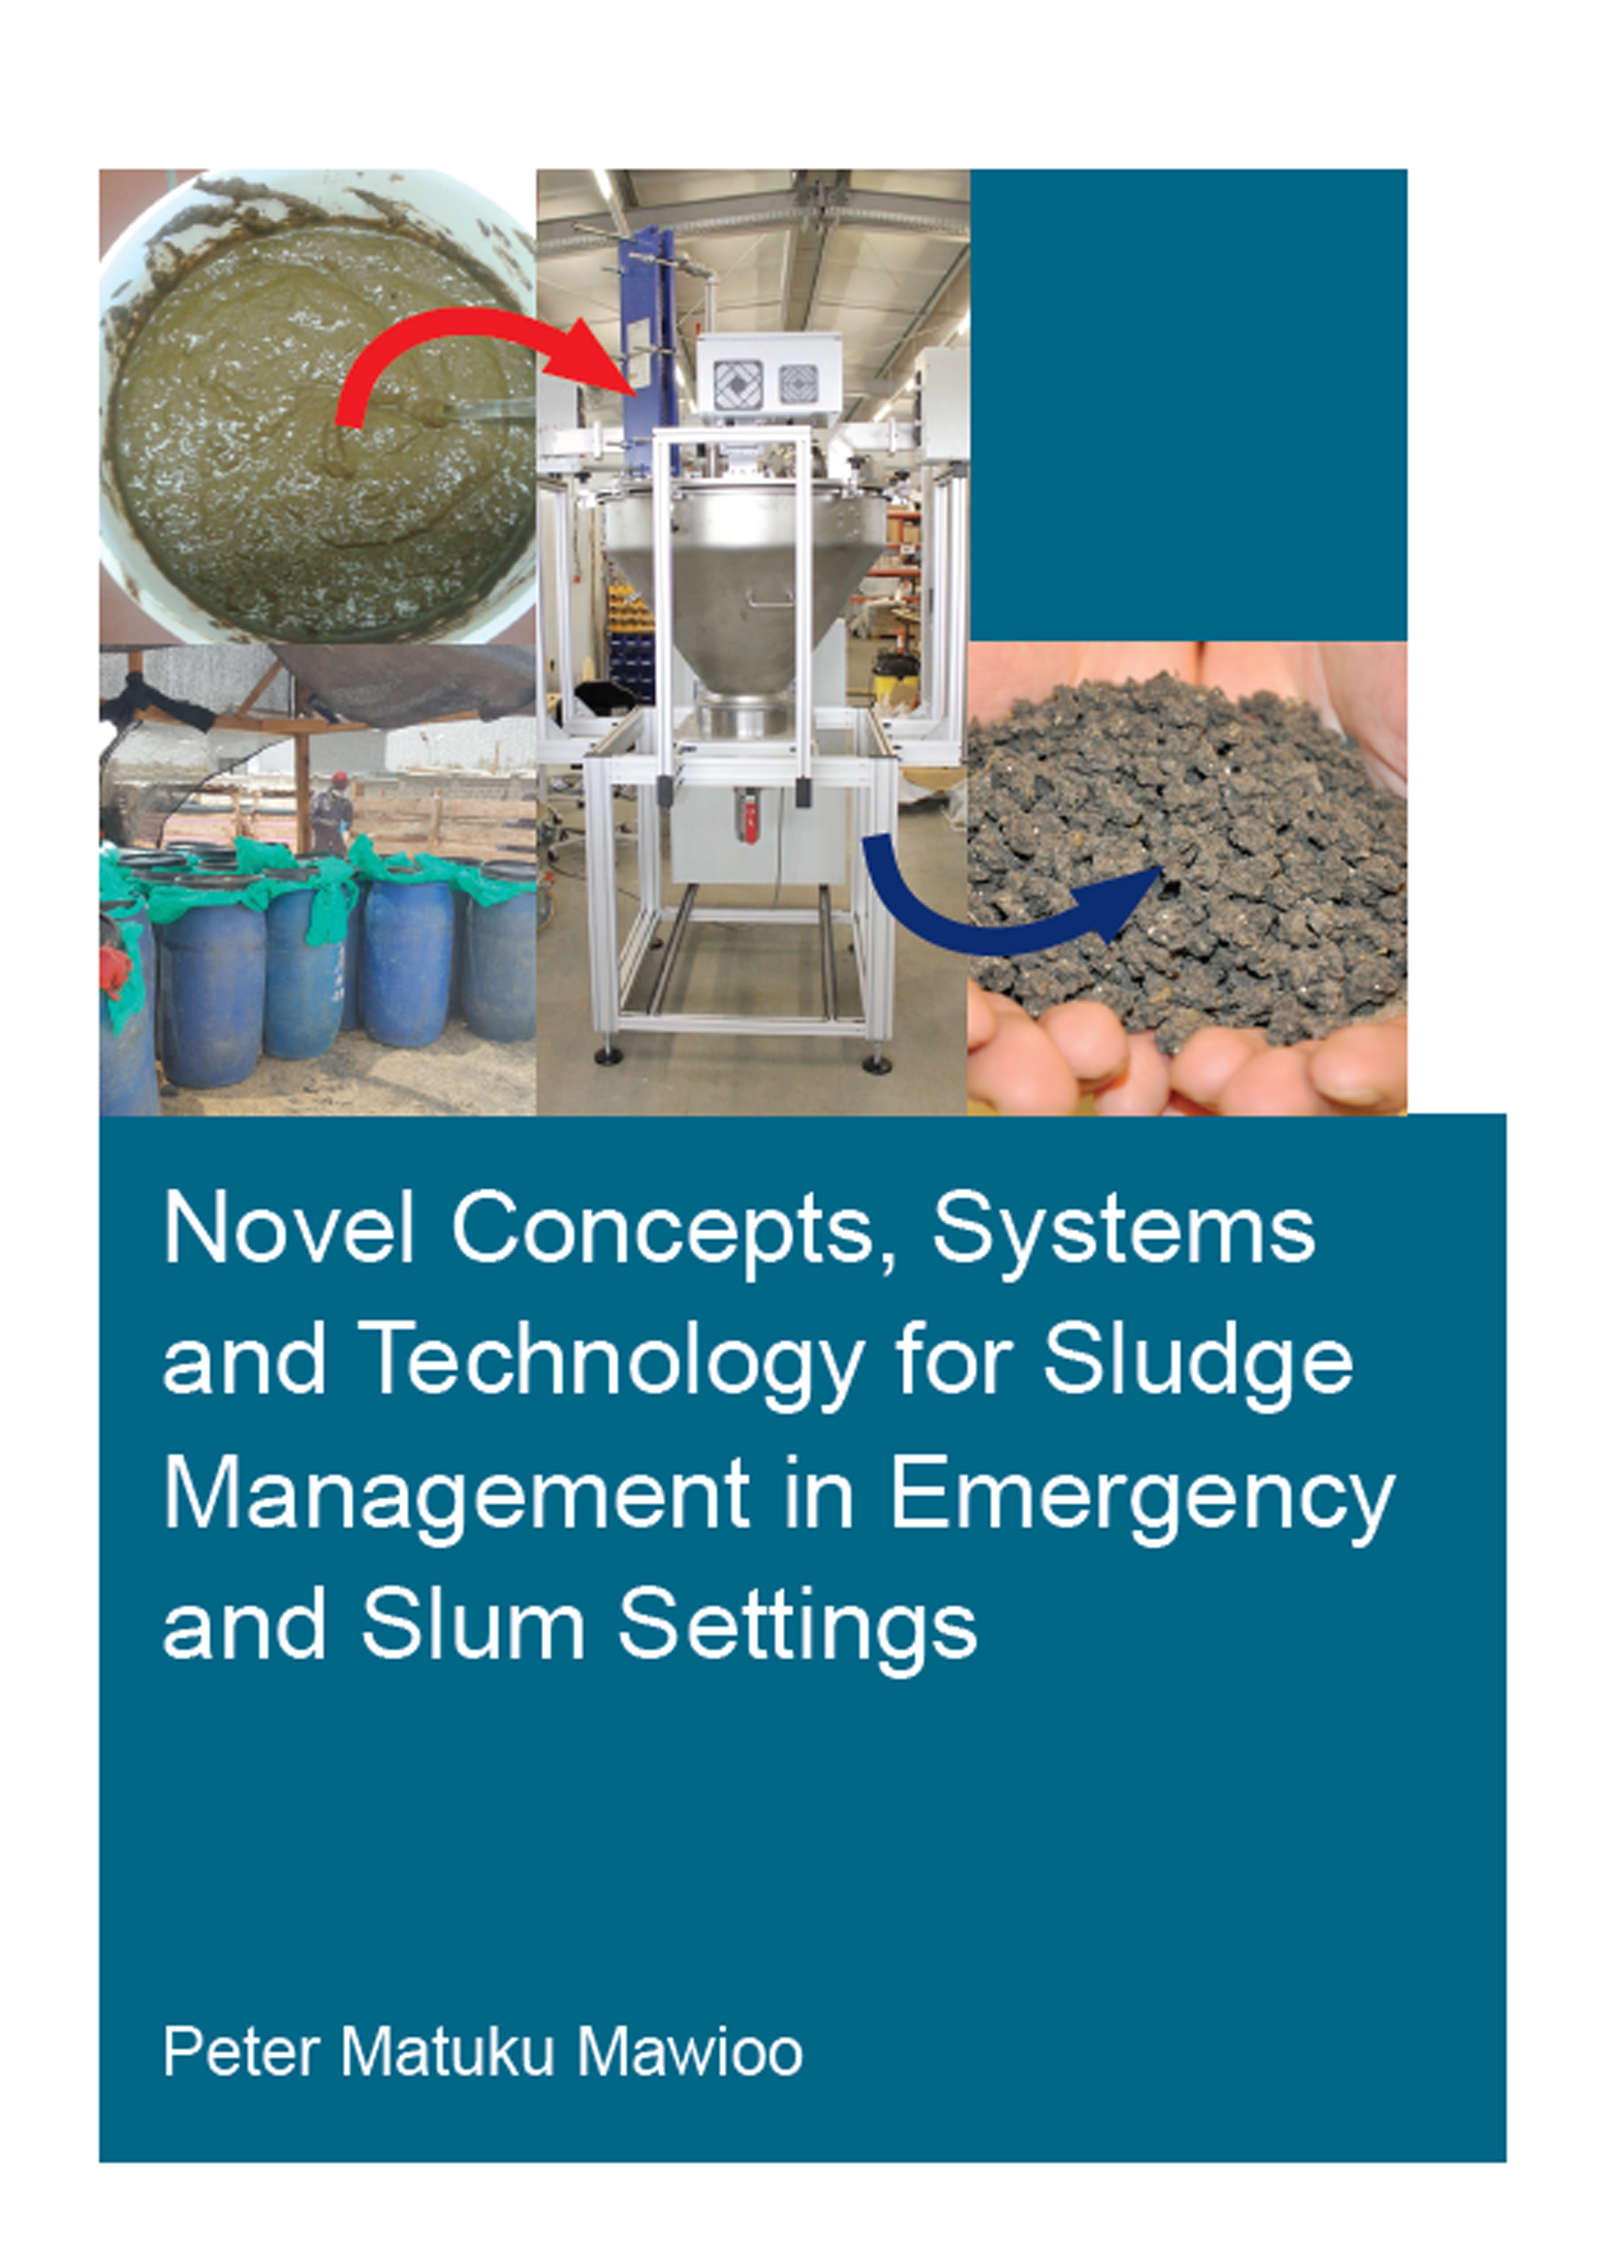 Novel Concepts, Systems and Technology for Sludge Management in Emergency and Slum Settings book cover